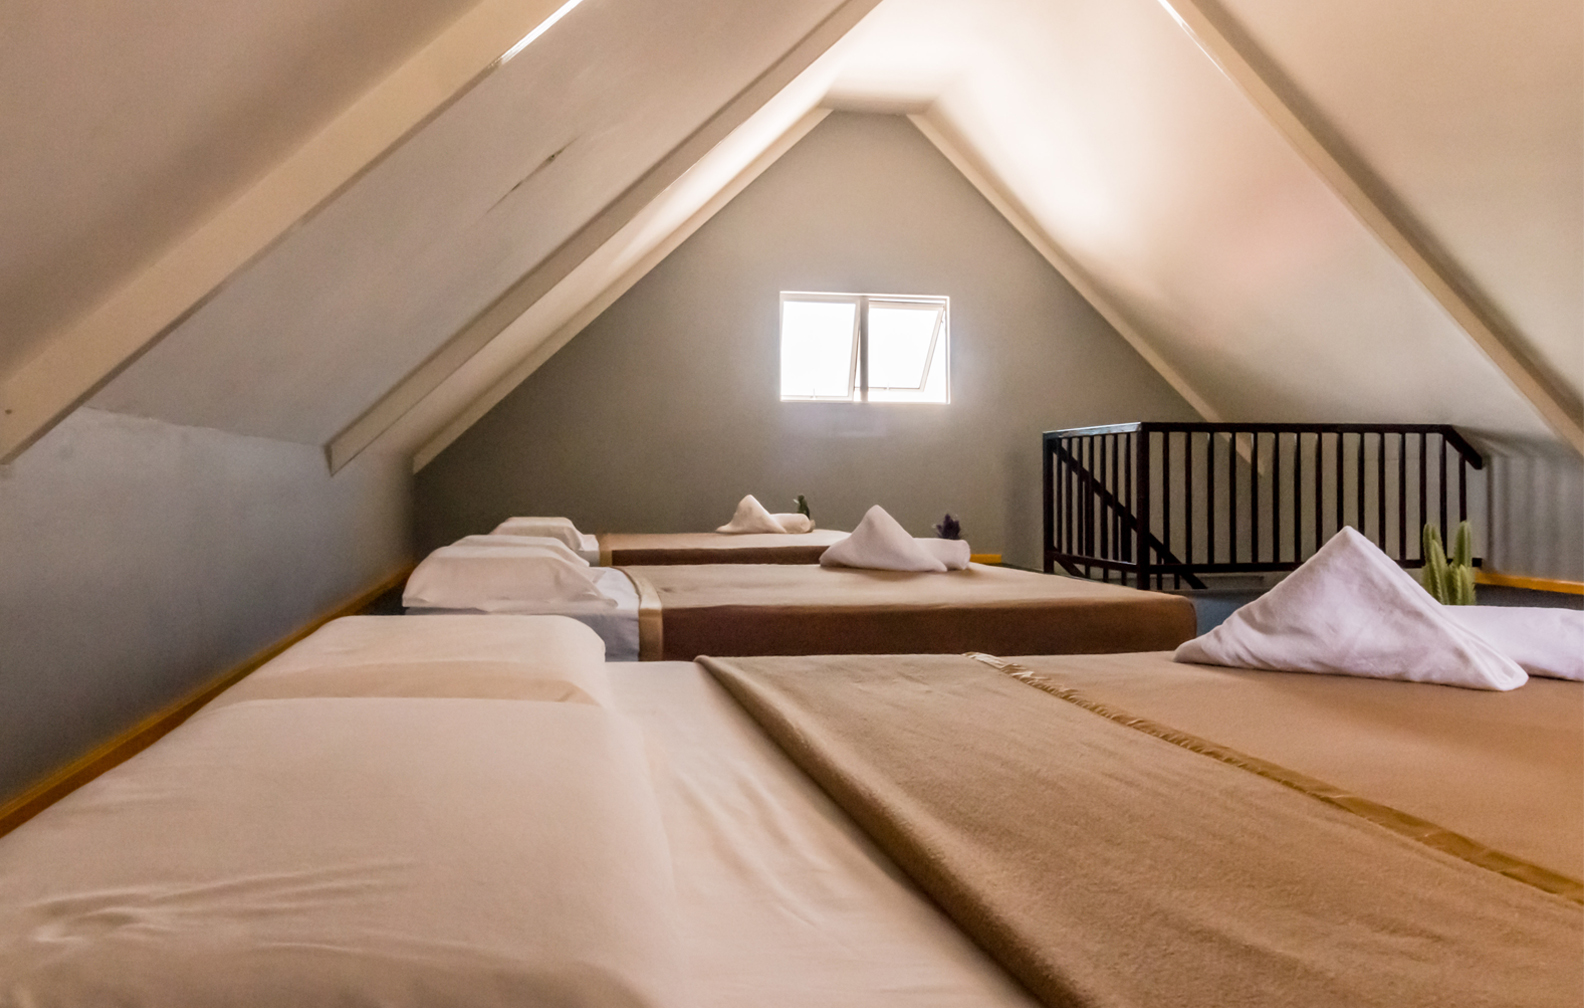 3 Beds at first floor